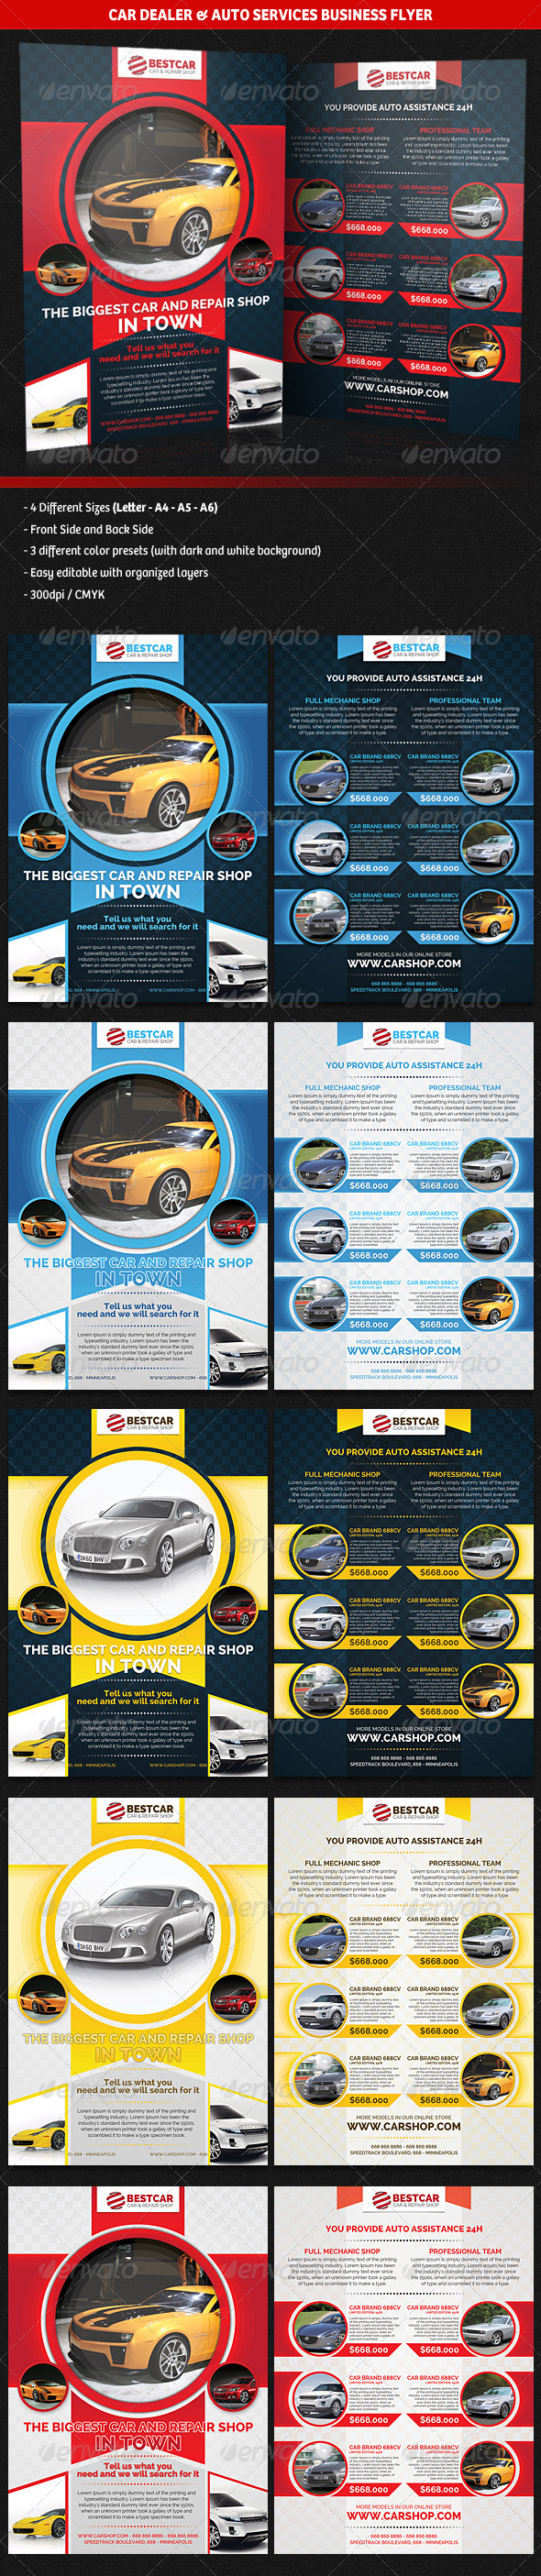 GraphicRiver Car Dealer & Auto Services Business Flyer 5150377